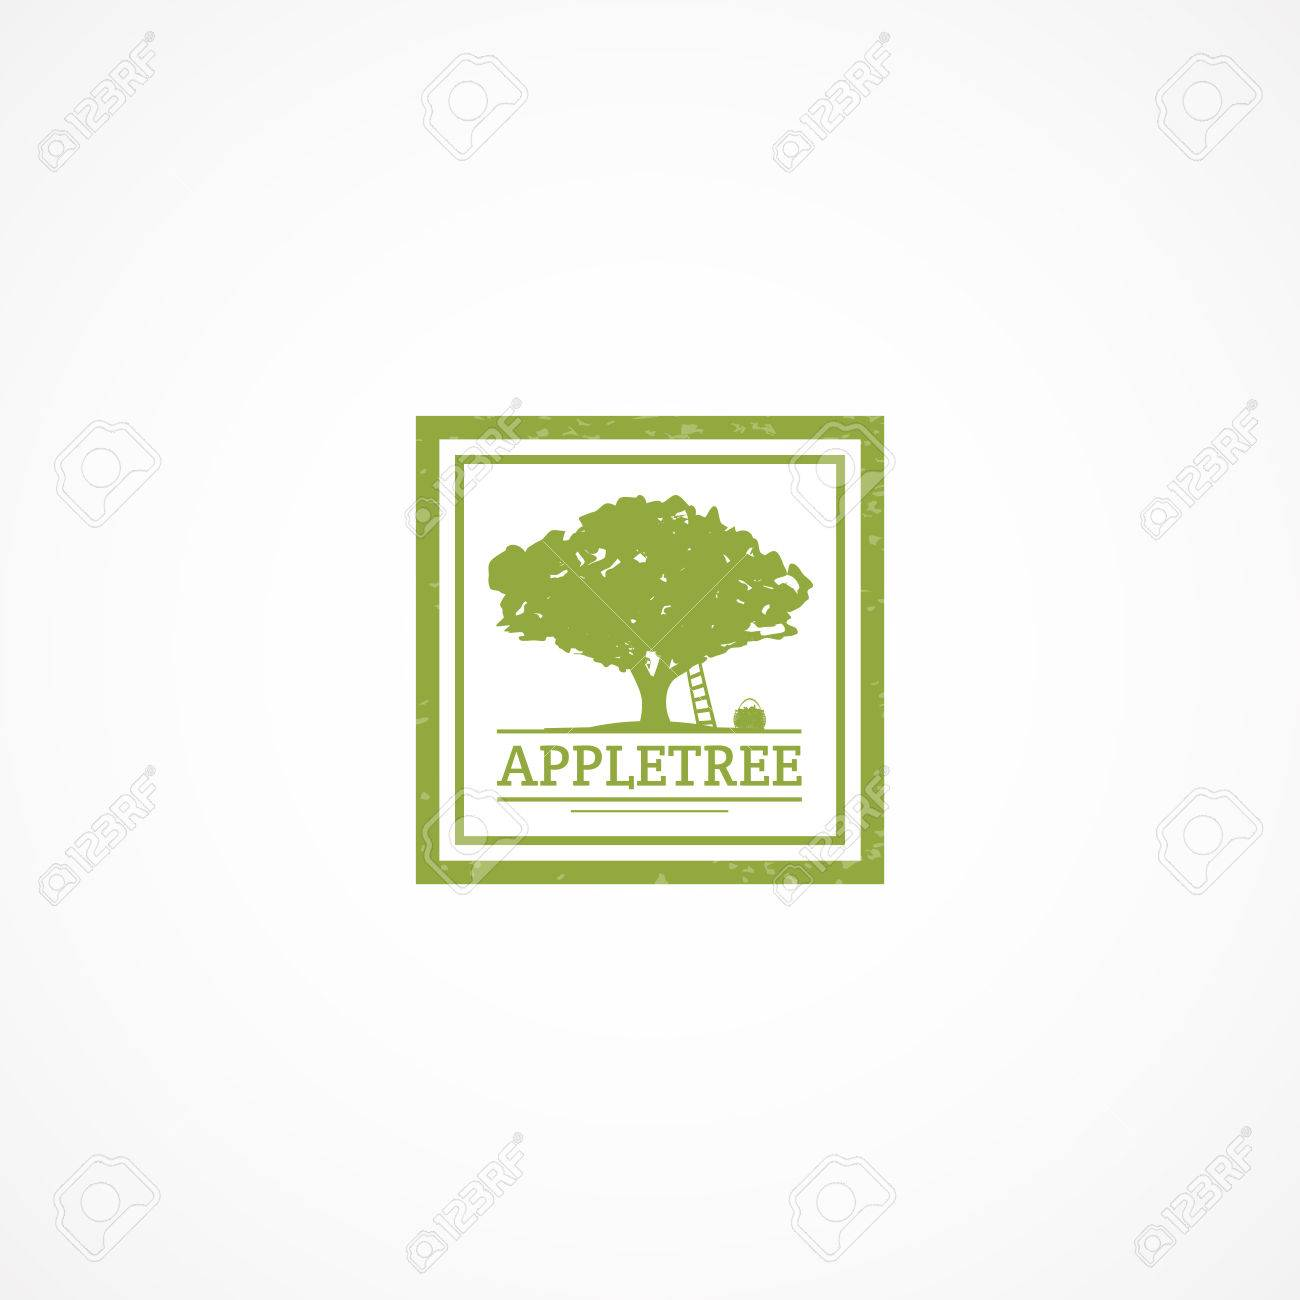 Apple Tree Logo Royalty Free Cliparts Vectors And Stock Illustration Image 71510764